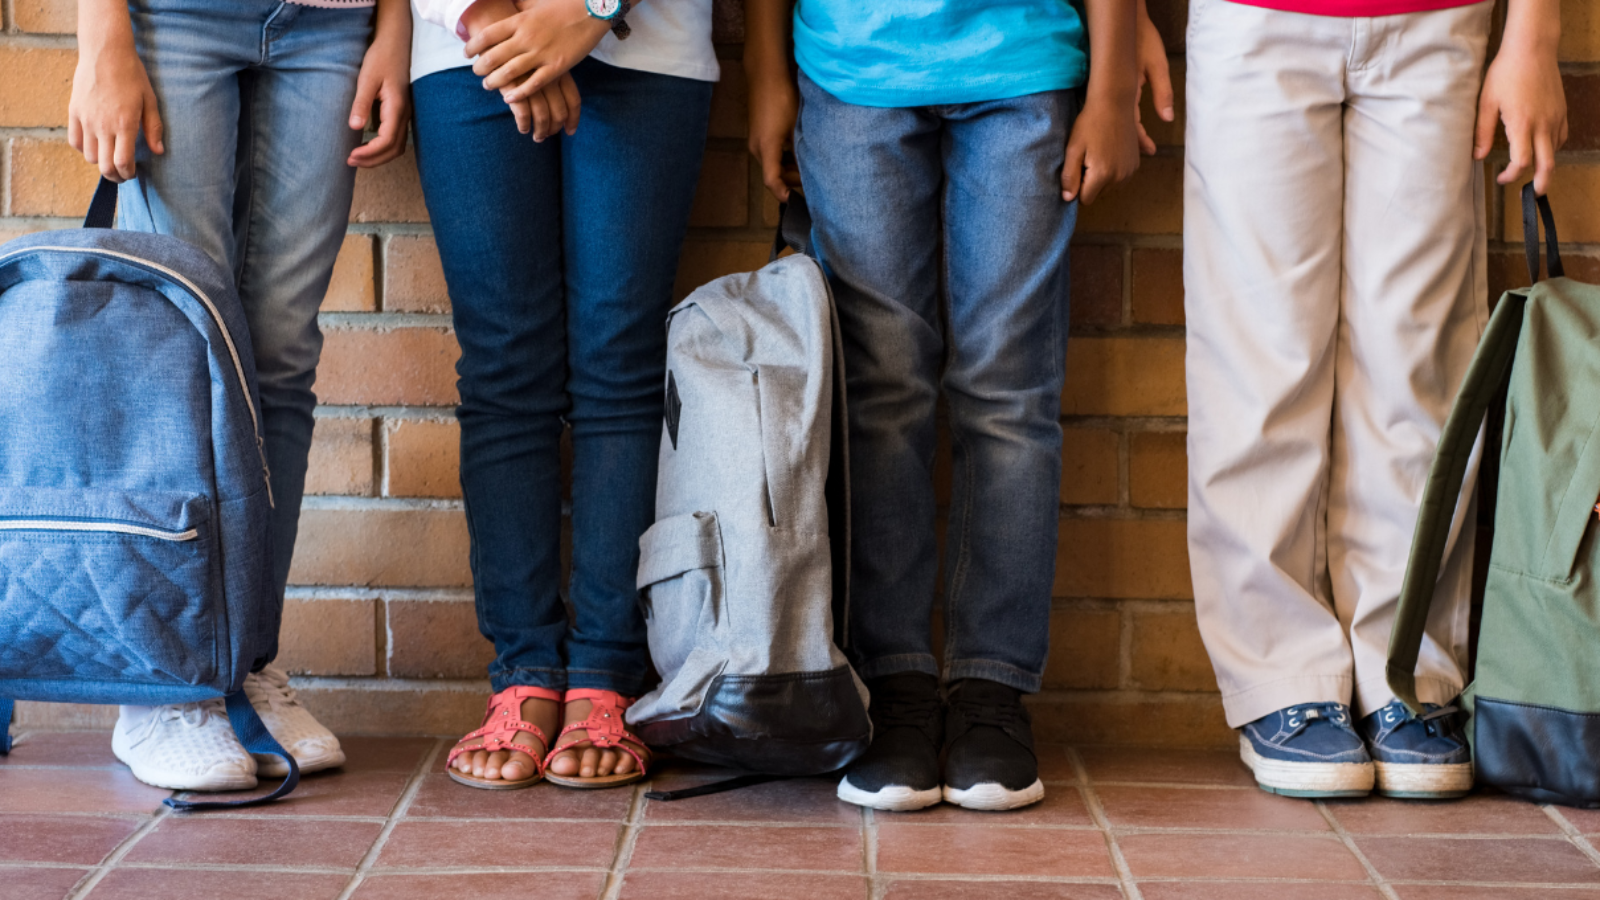 Four kids going back to school with their backpacks at their feet